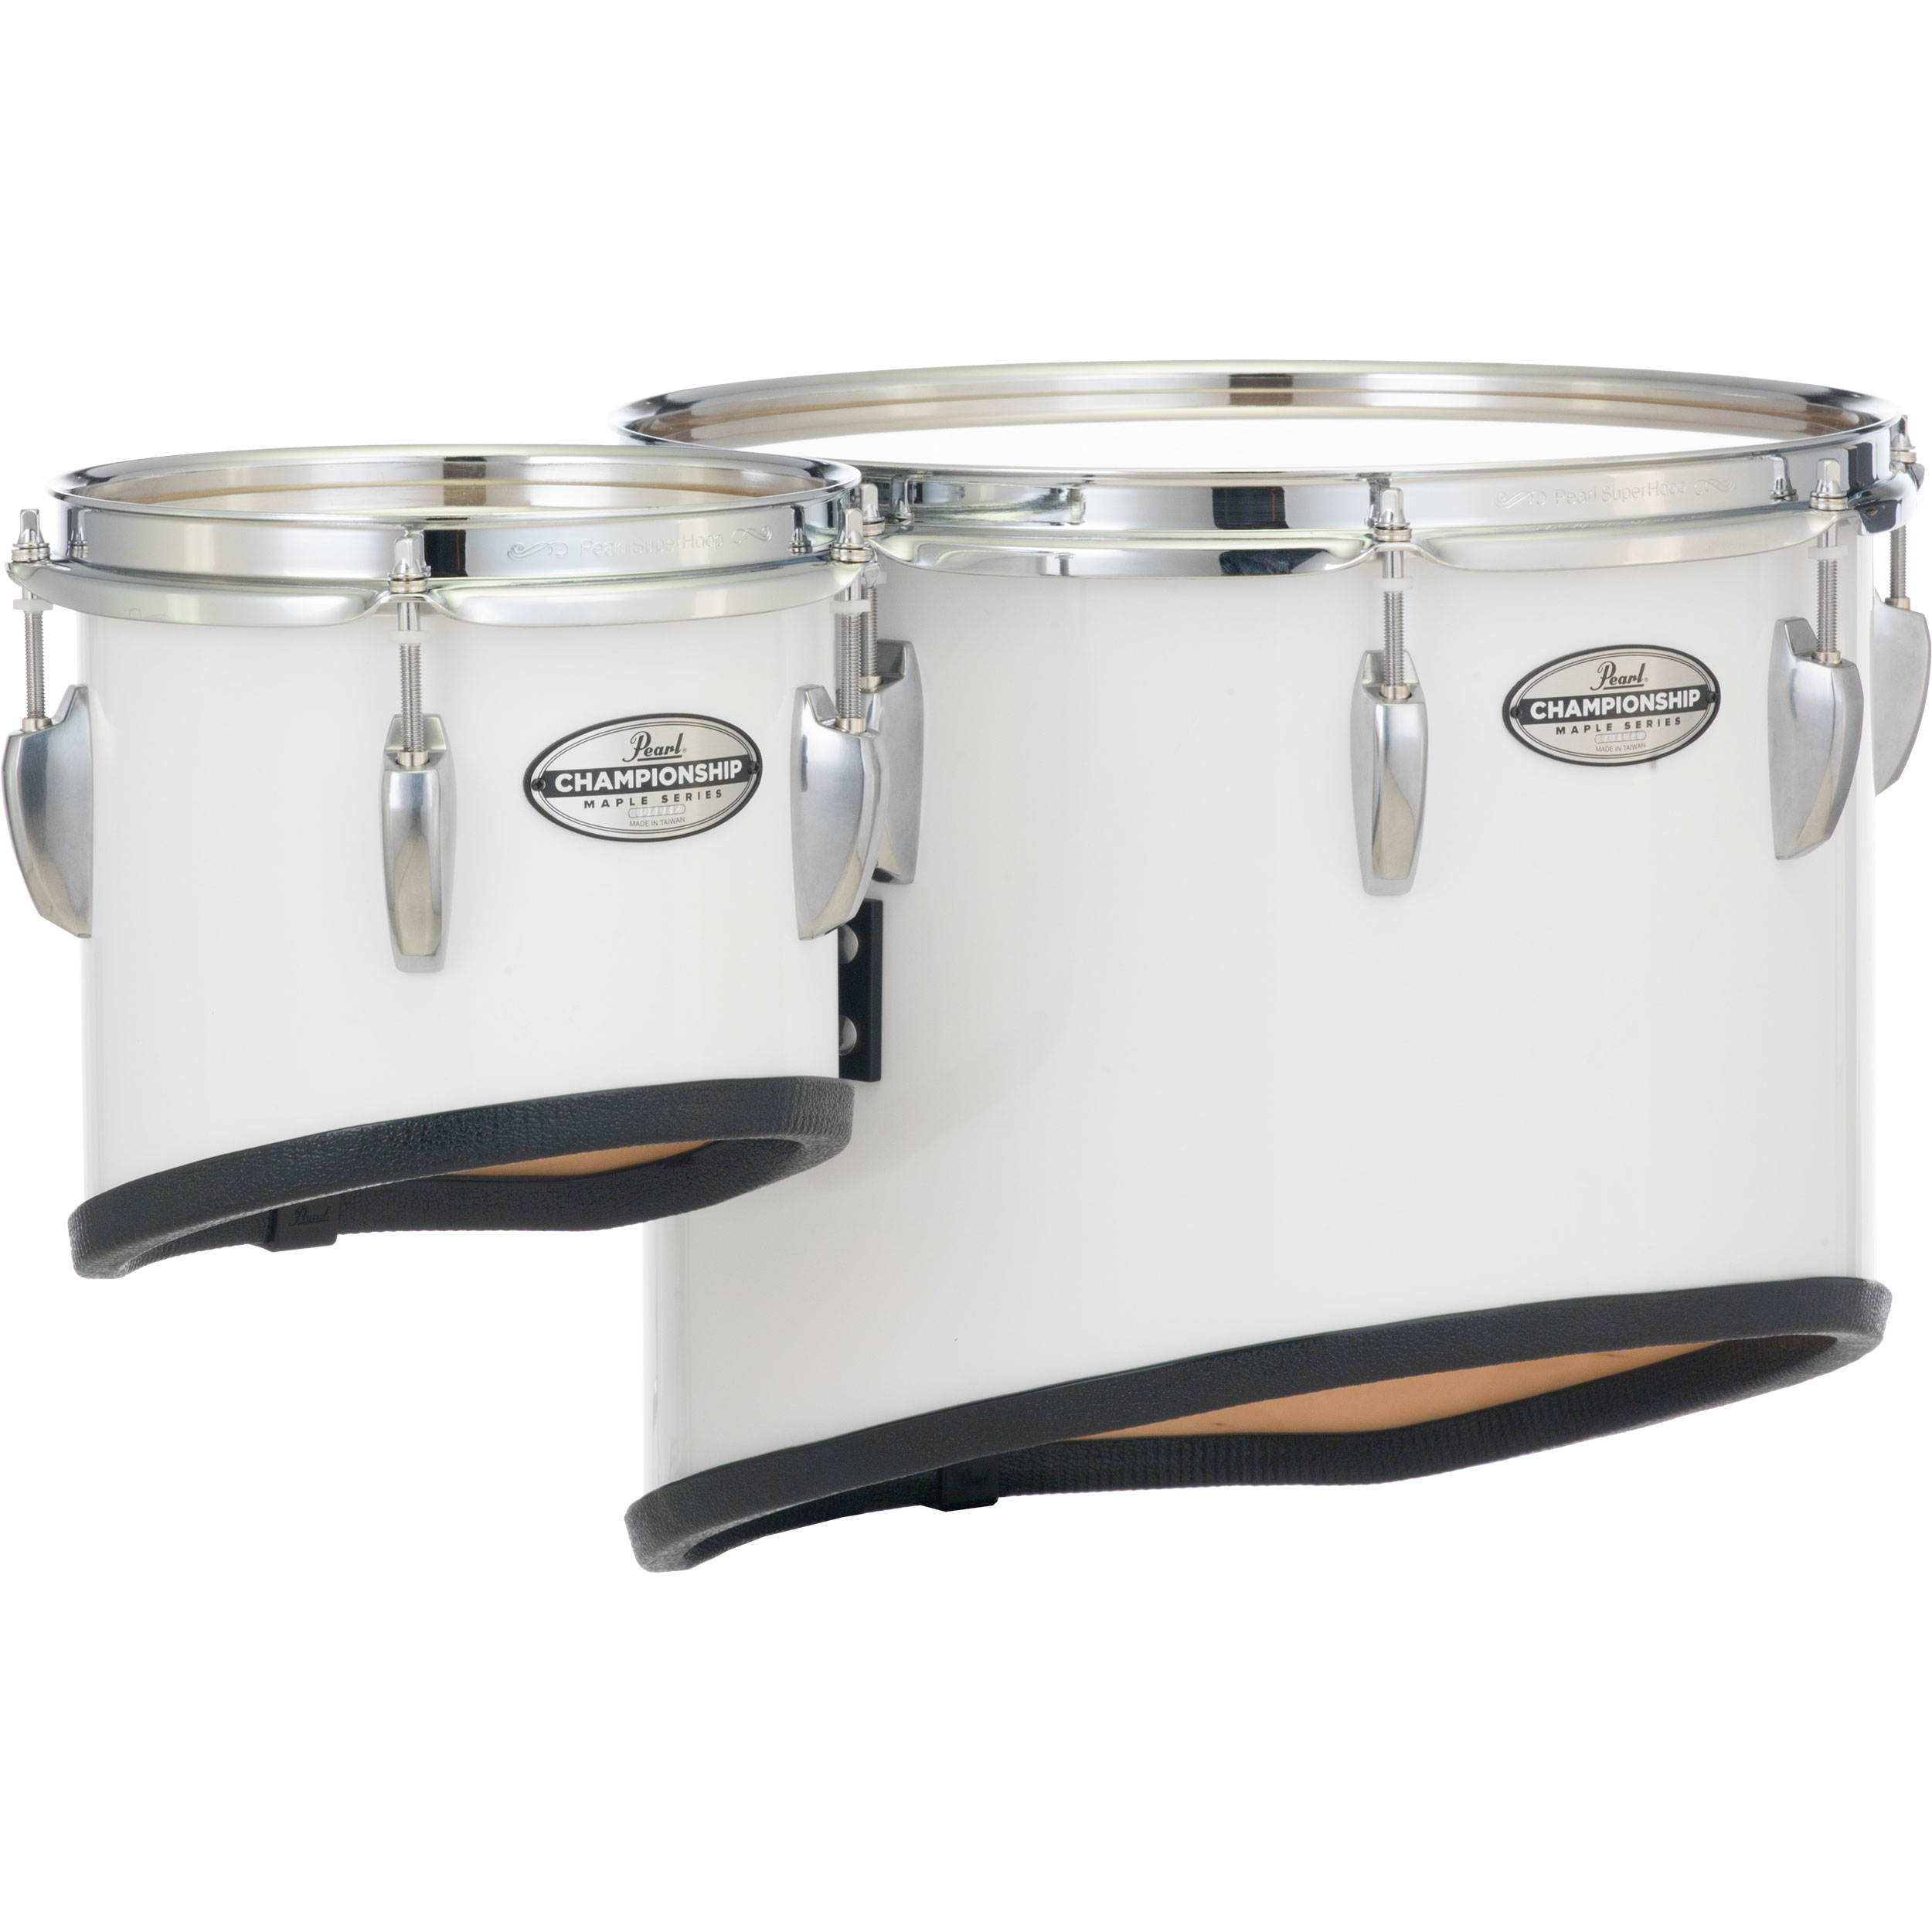 """Pearl 13"""" x 14"""" Championship Maple Sonic Cut Single Tenor with Mounts for CXS1 Carrier Aluminum Hardware (Specify Finish)"""